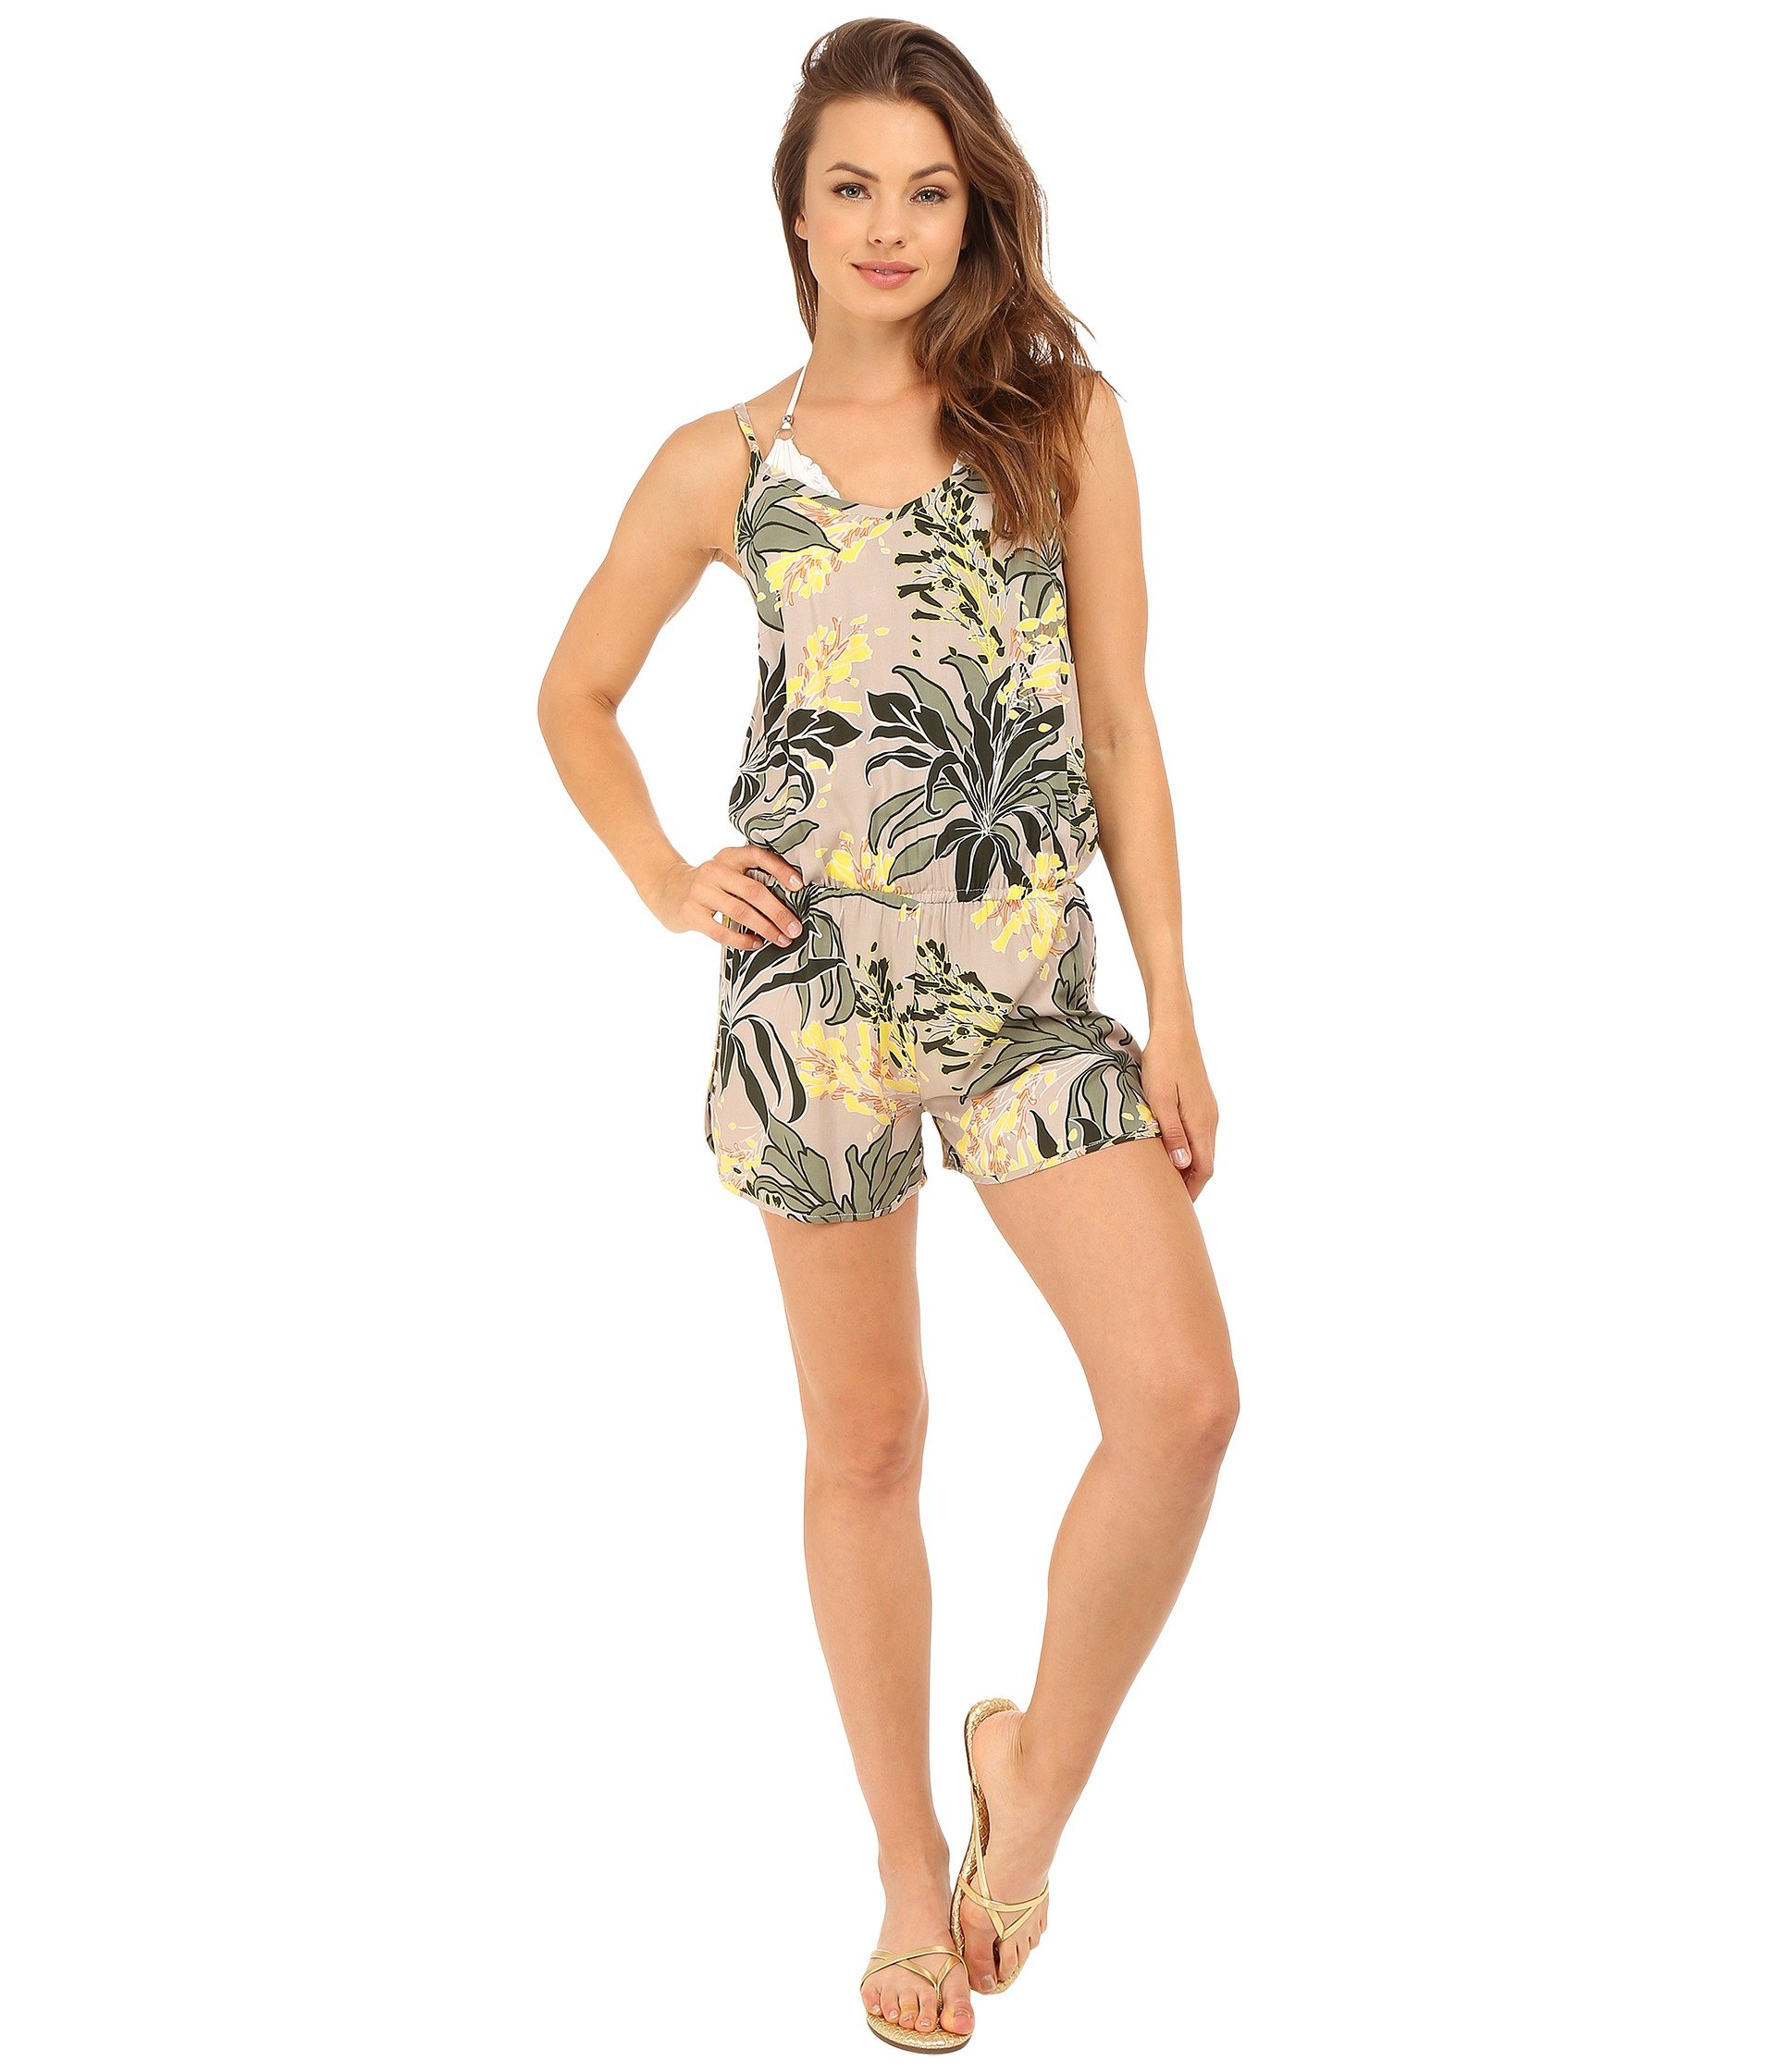 07899a67132 VINCE CAMUTO Crete Flower Romper Cover-Up